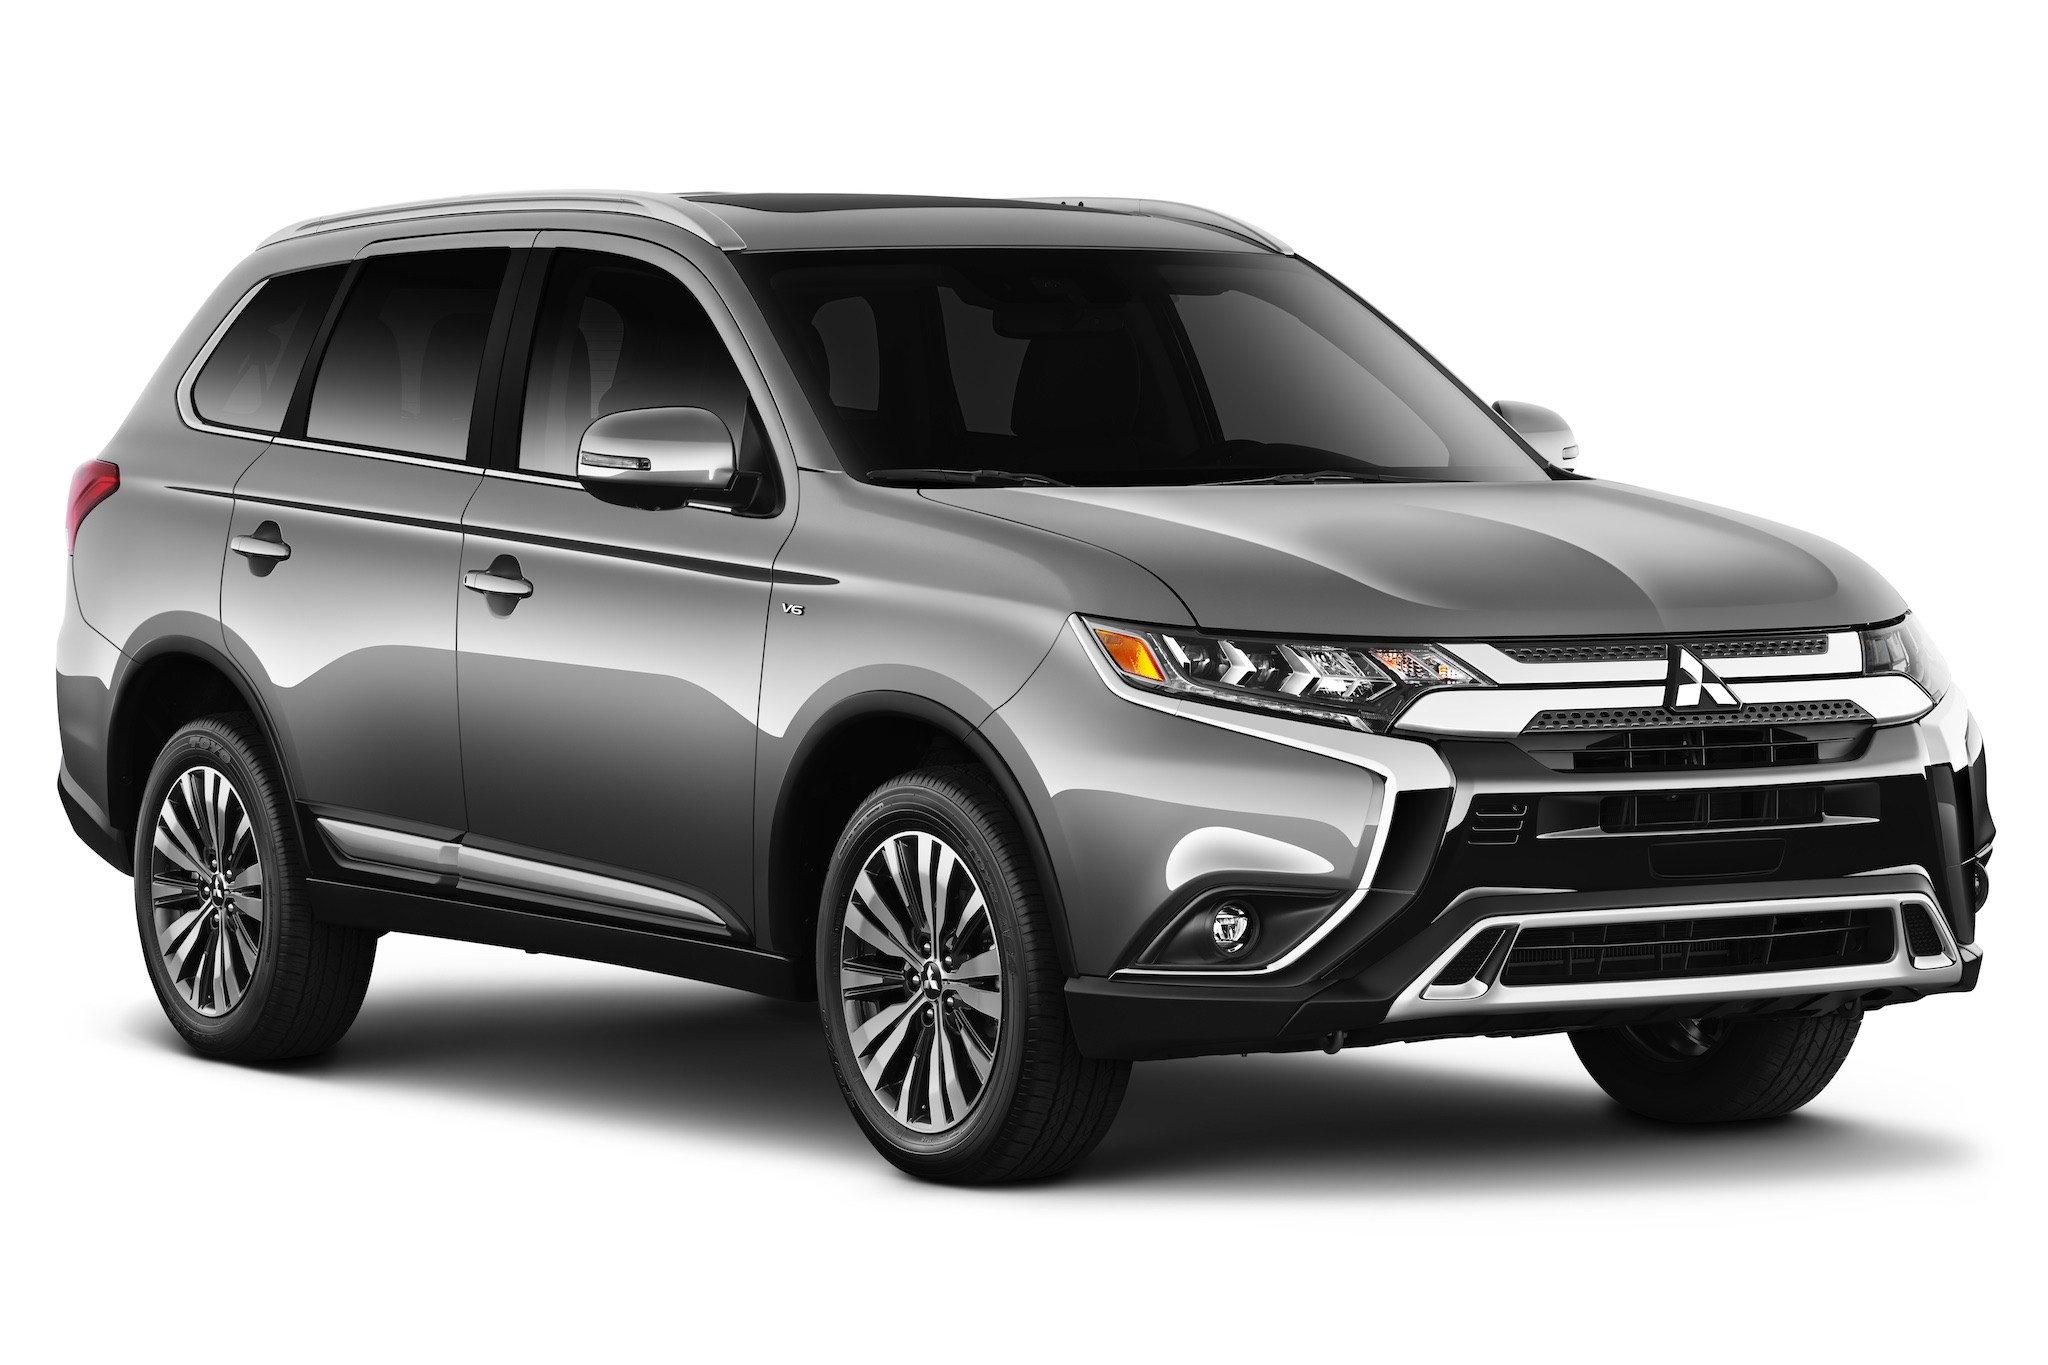 2019 mitsubishi outlander overview the news wheel. Black Bedroom Furniture Sets. Home Design Ideas